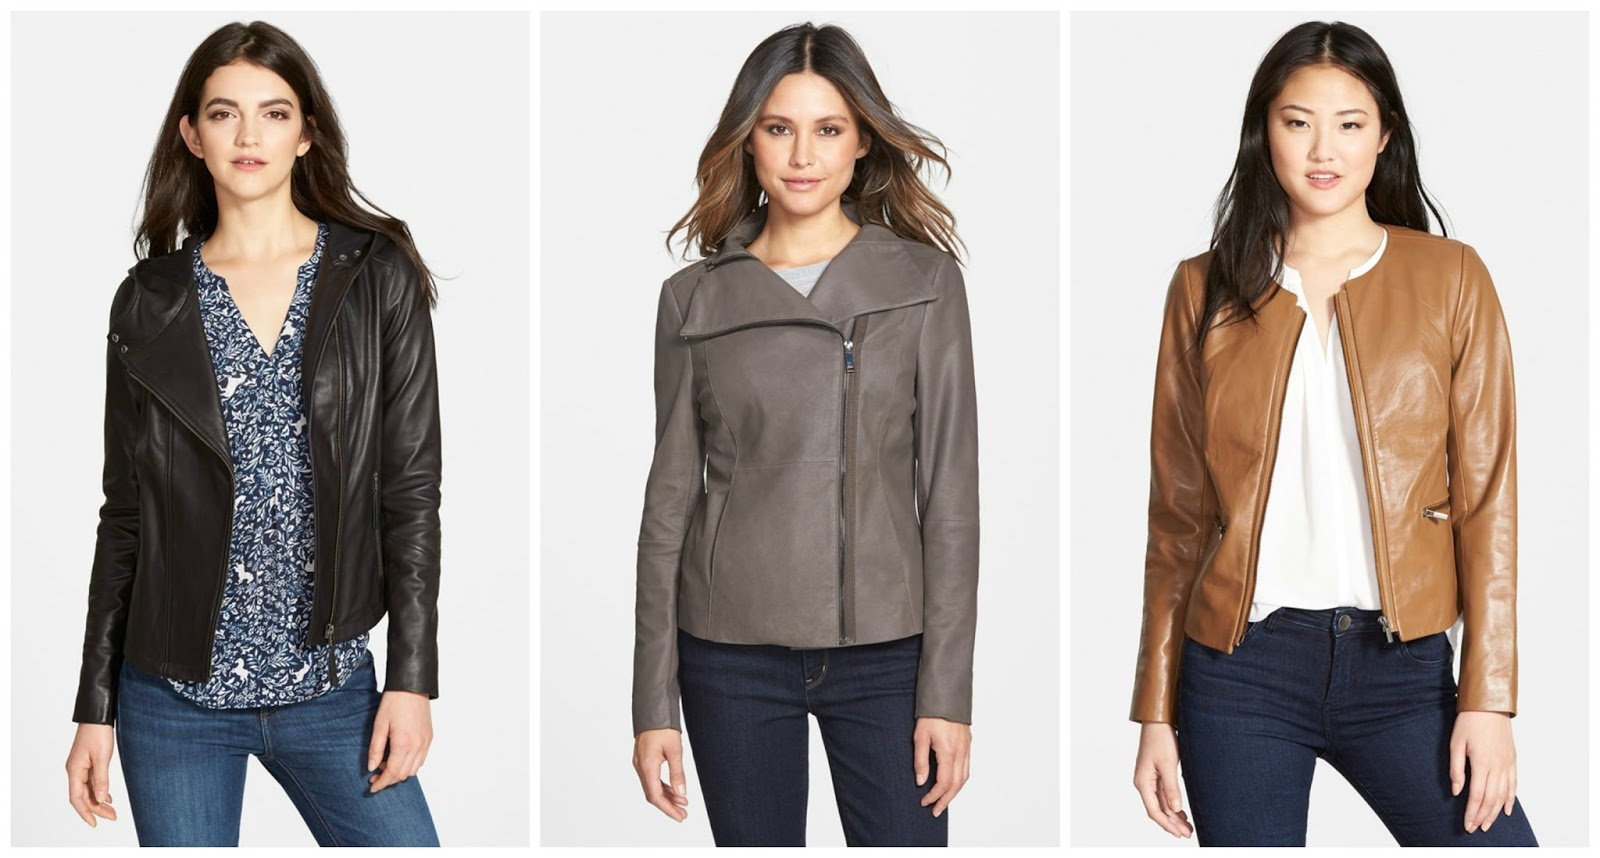 deb211627f2d5c And because I'm a sucker for a deal and a faux leather jacket to throw on  top of any old outfit…